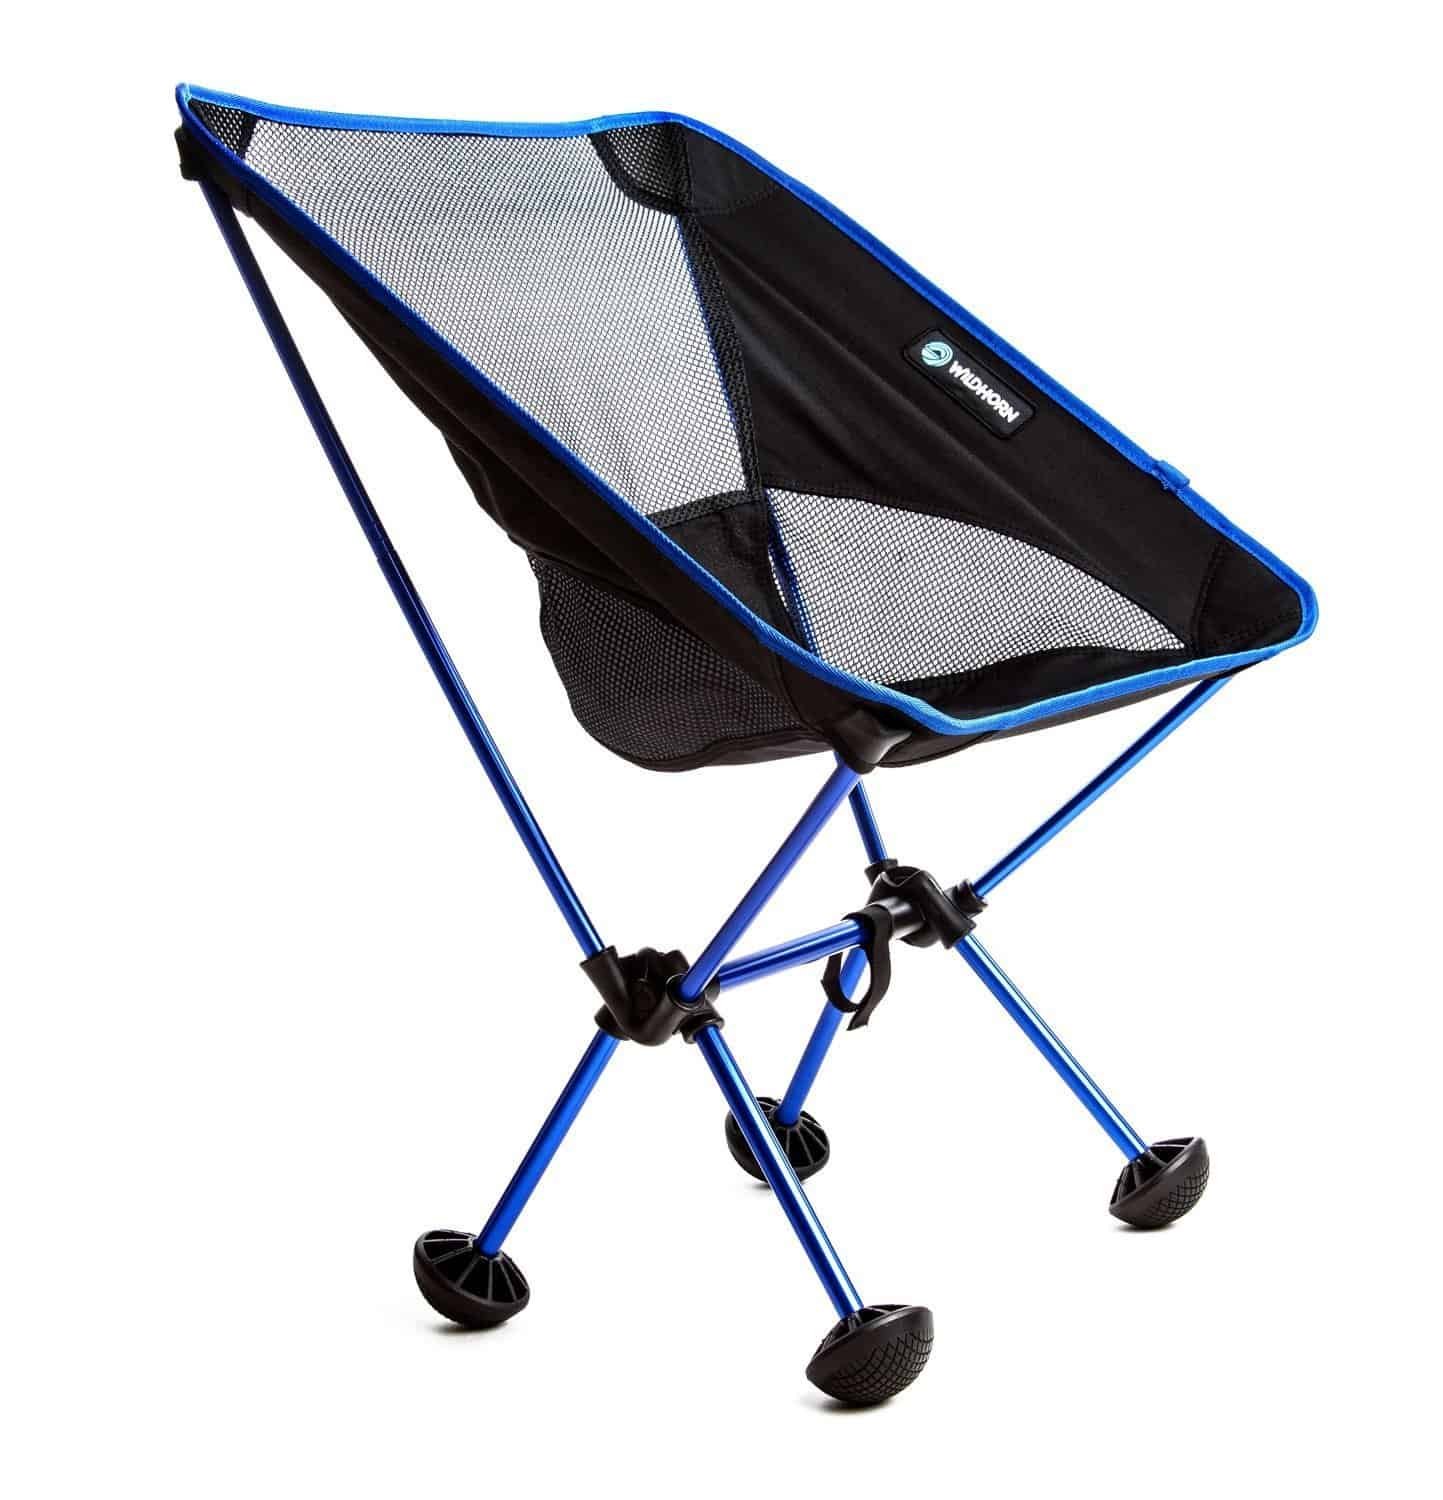 Wildhorn Outfitters Terralite Portable Camping Chair Blue